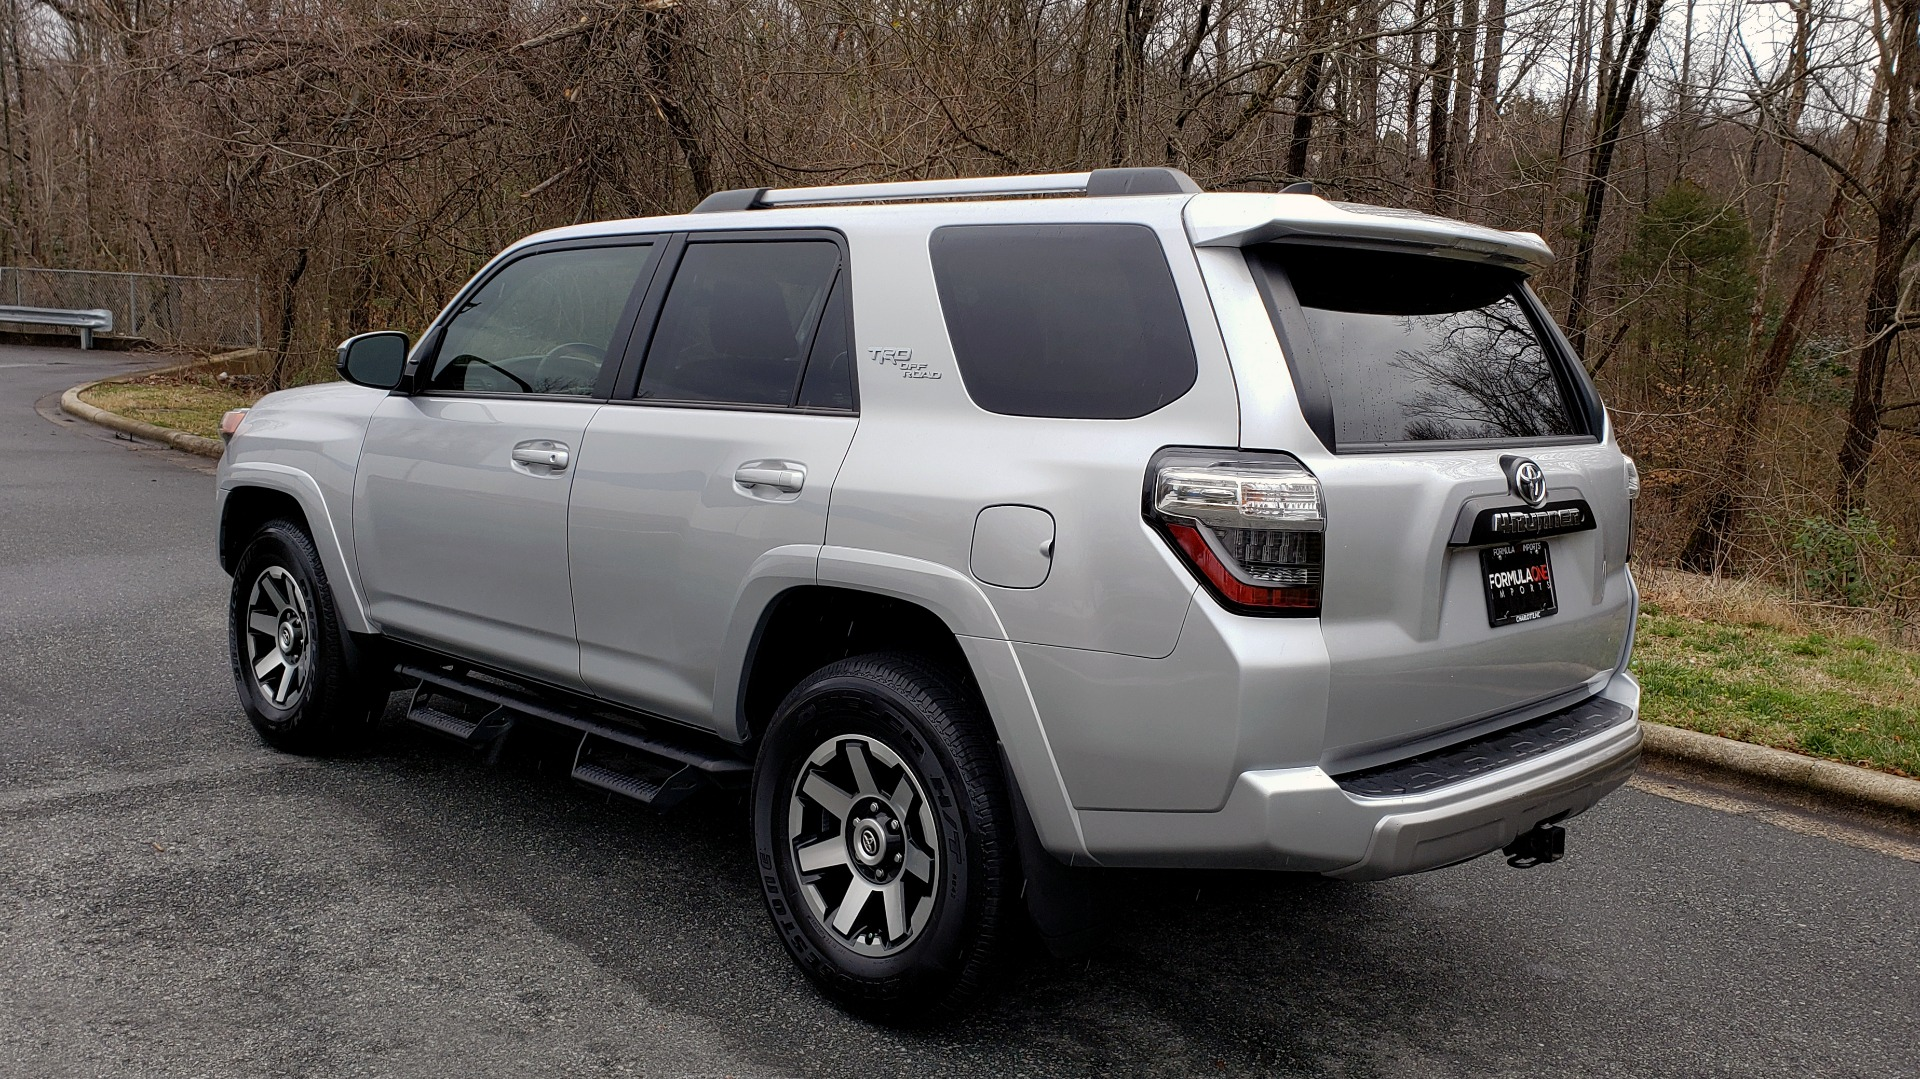 Used 2018 Toyota 4RUNNER TRD OFF-ROAD 4X4 / V6 / AUTO / LEATHER / LOW MILES! for sale Sold at Formula Imports in Charlotte NC 28227 3